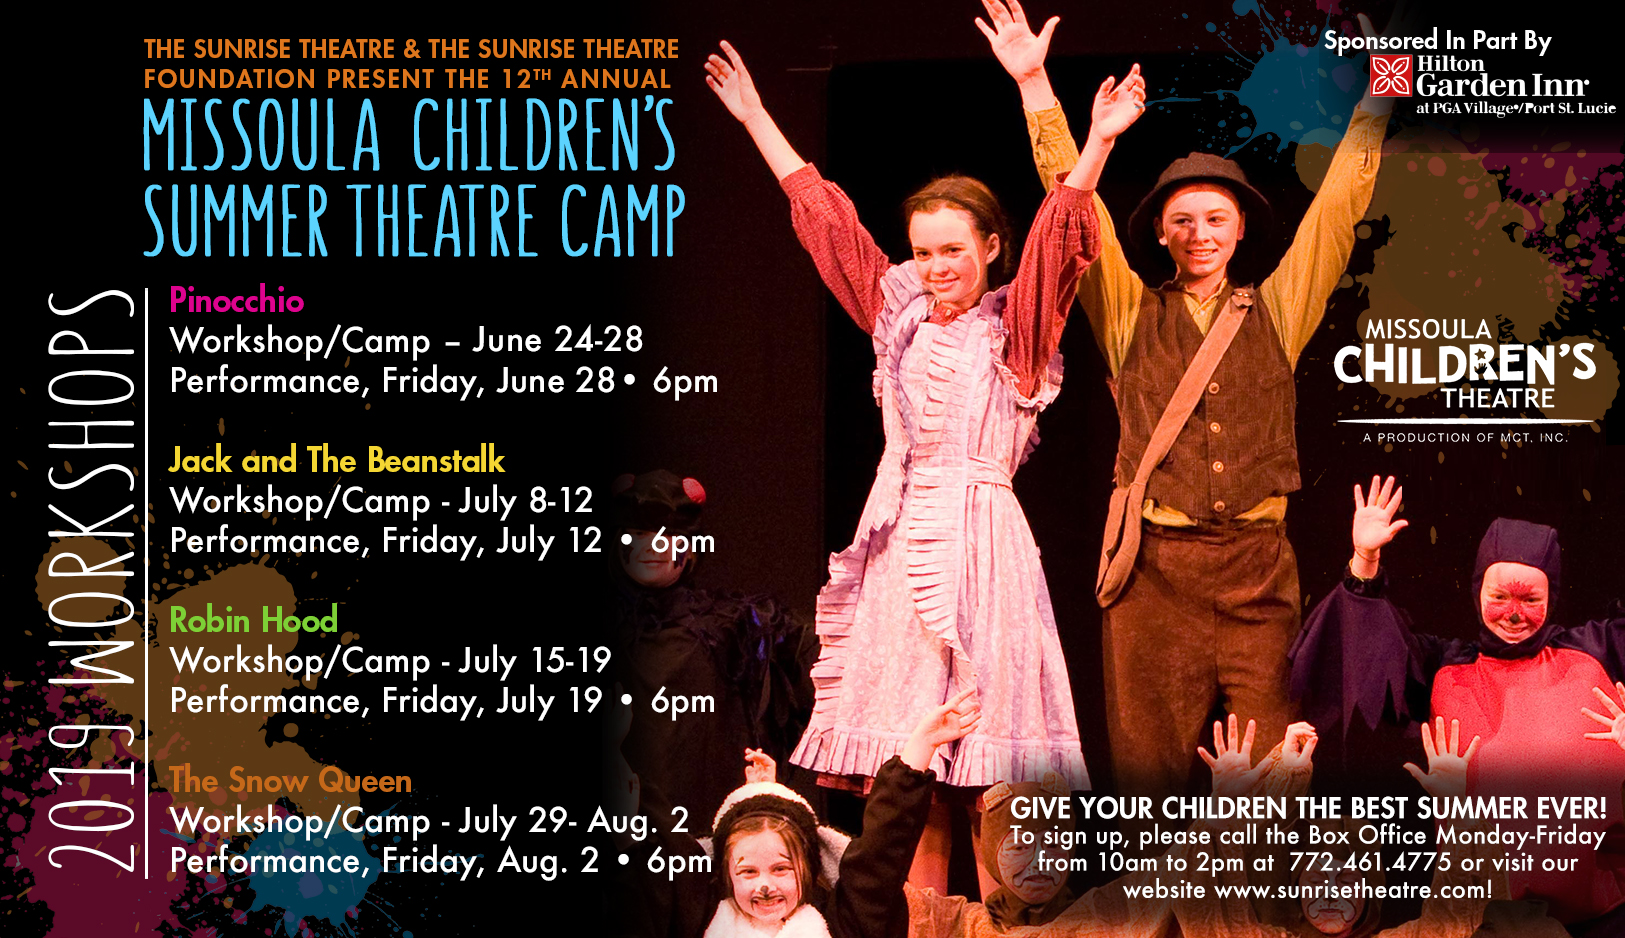 Missoula Children's Theatre Summer Camp sponsored by Humana